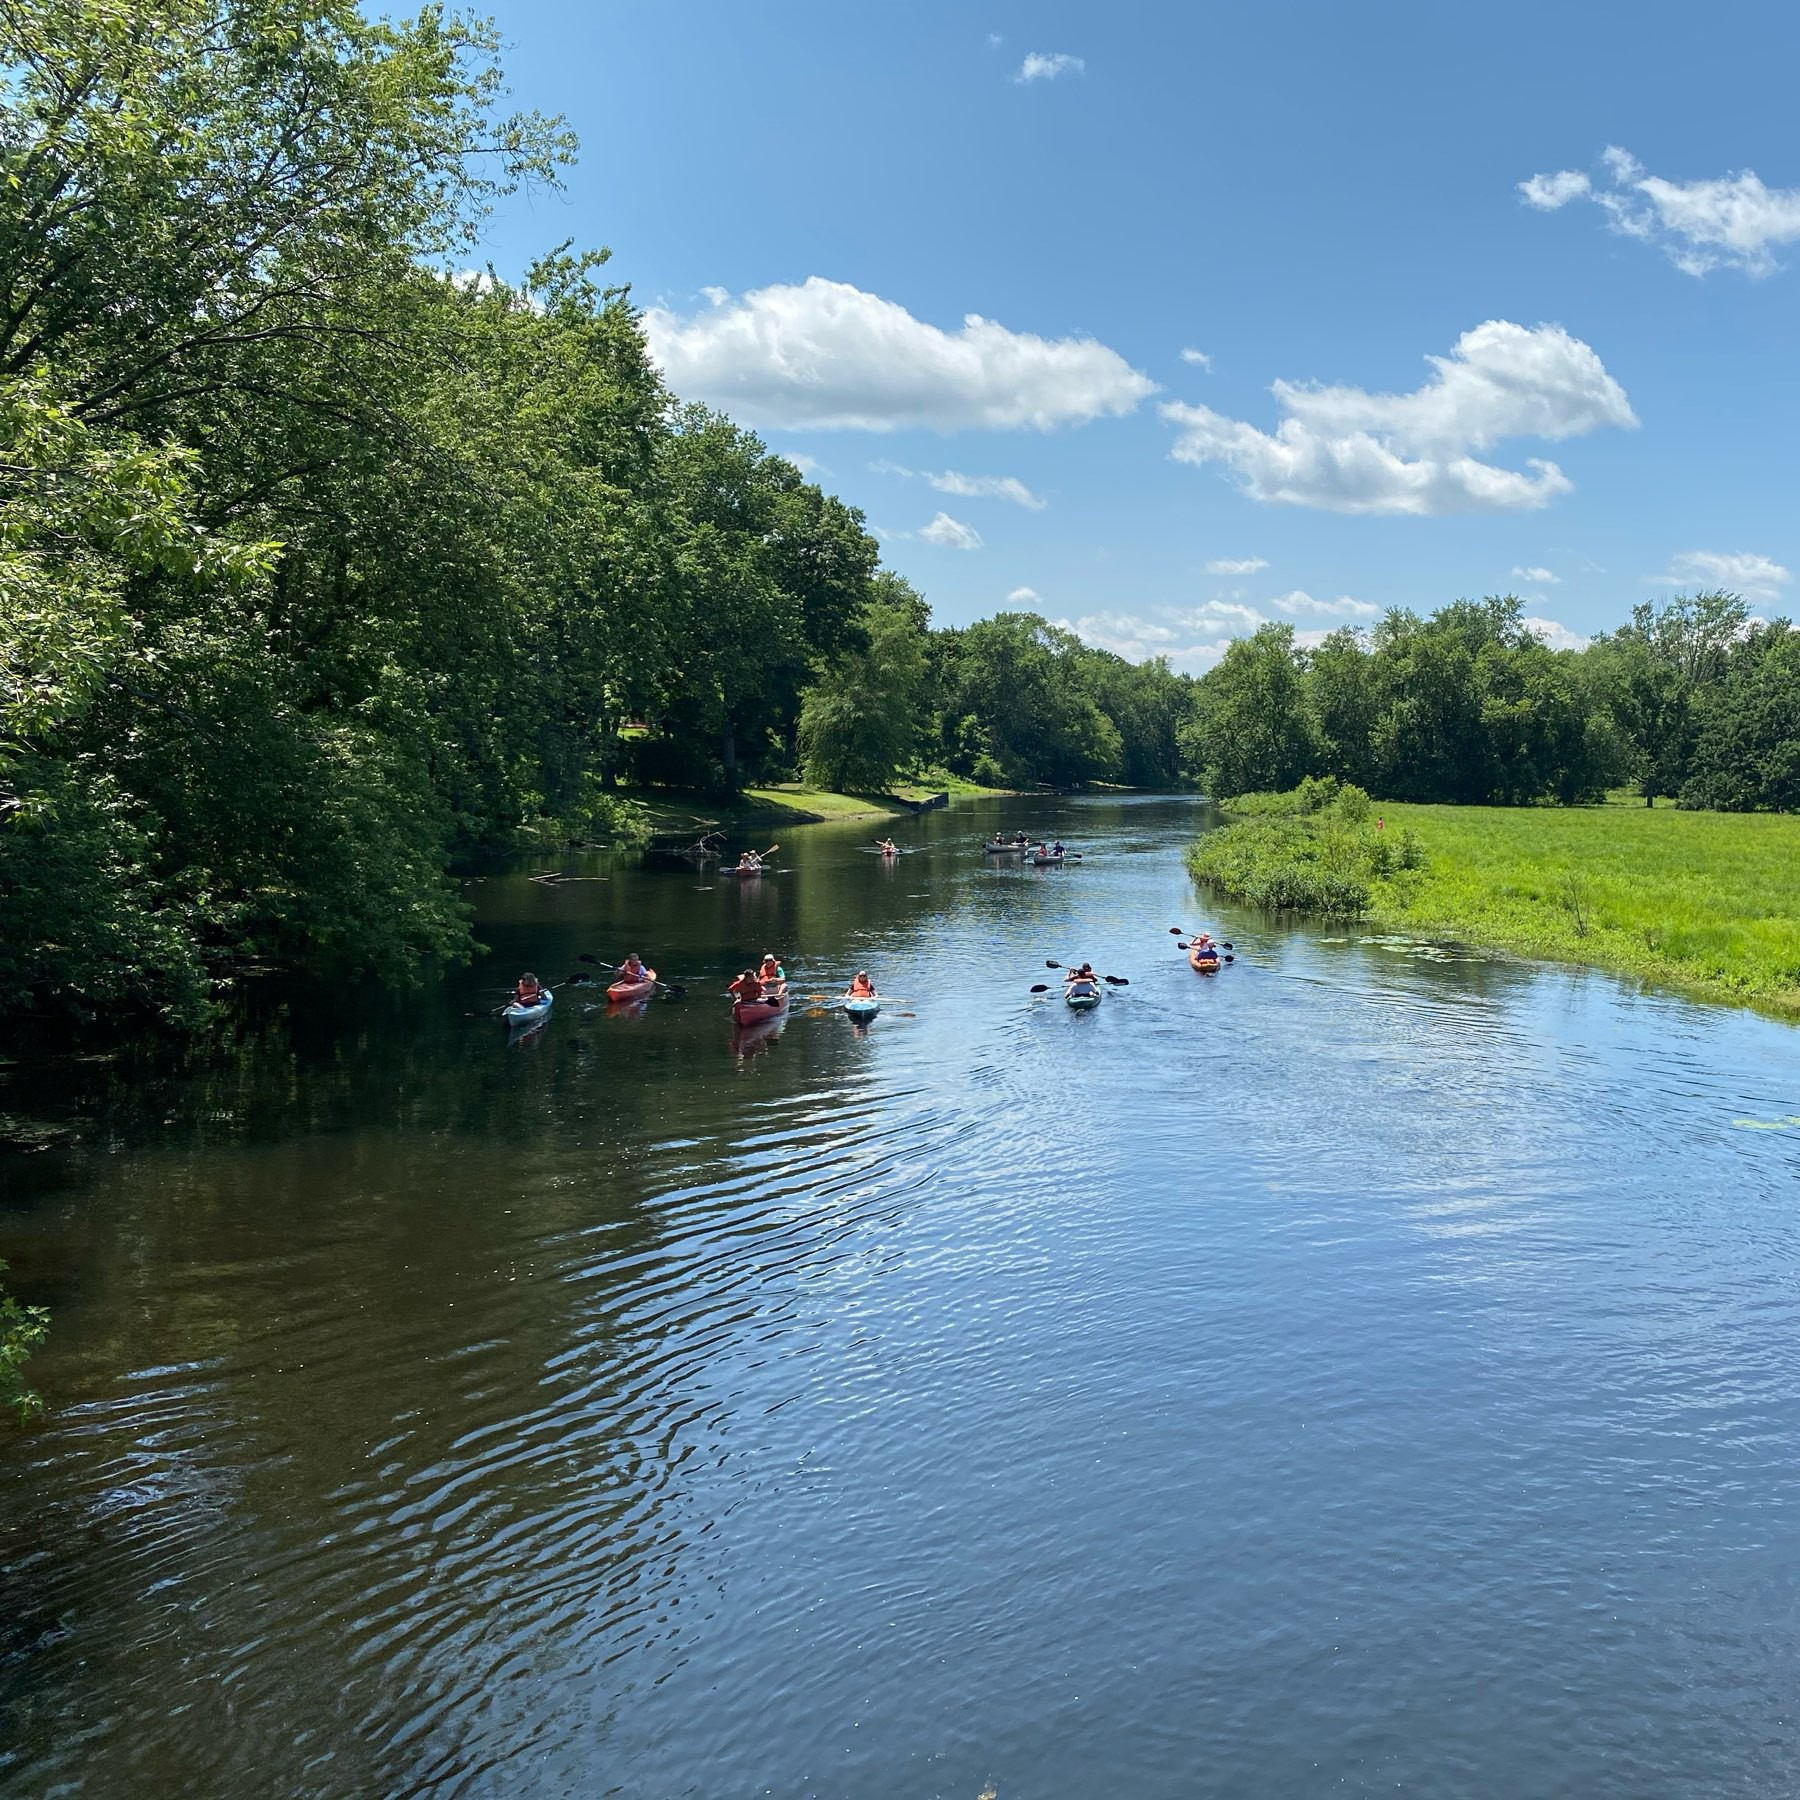 a wide tree lined river with people kayaking and canoeing